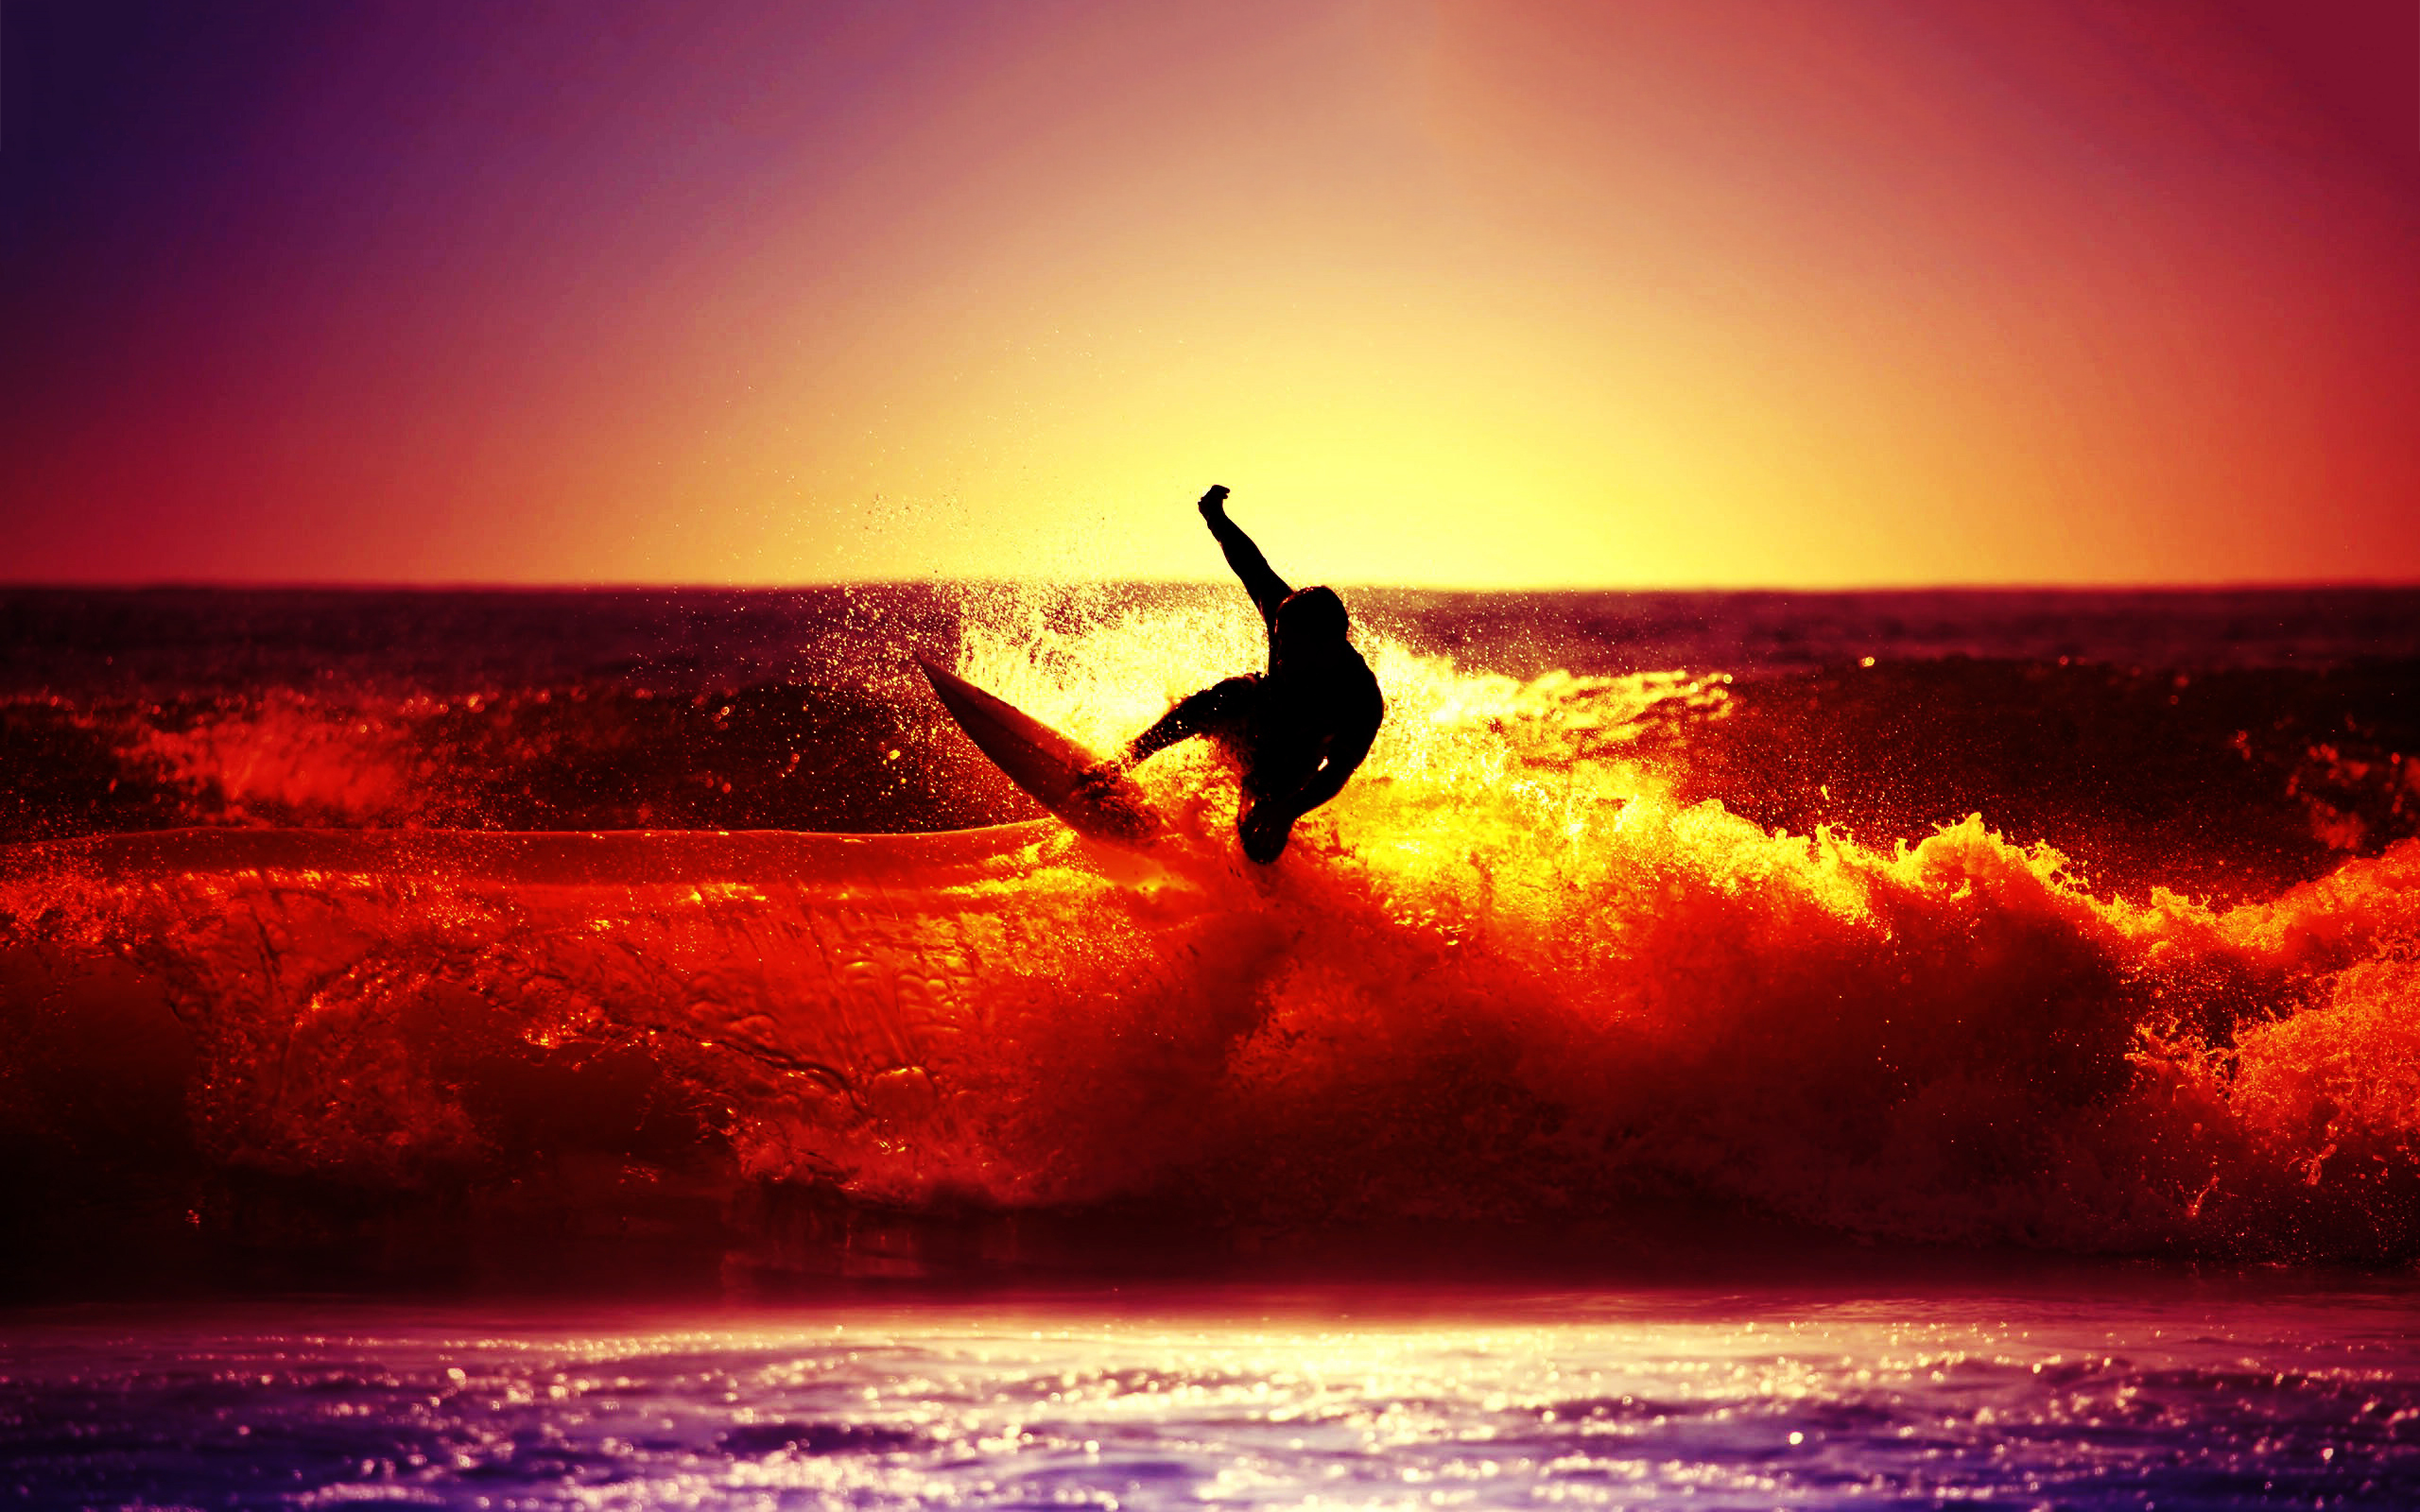 surfing-ocean-sunset